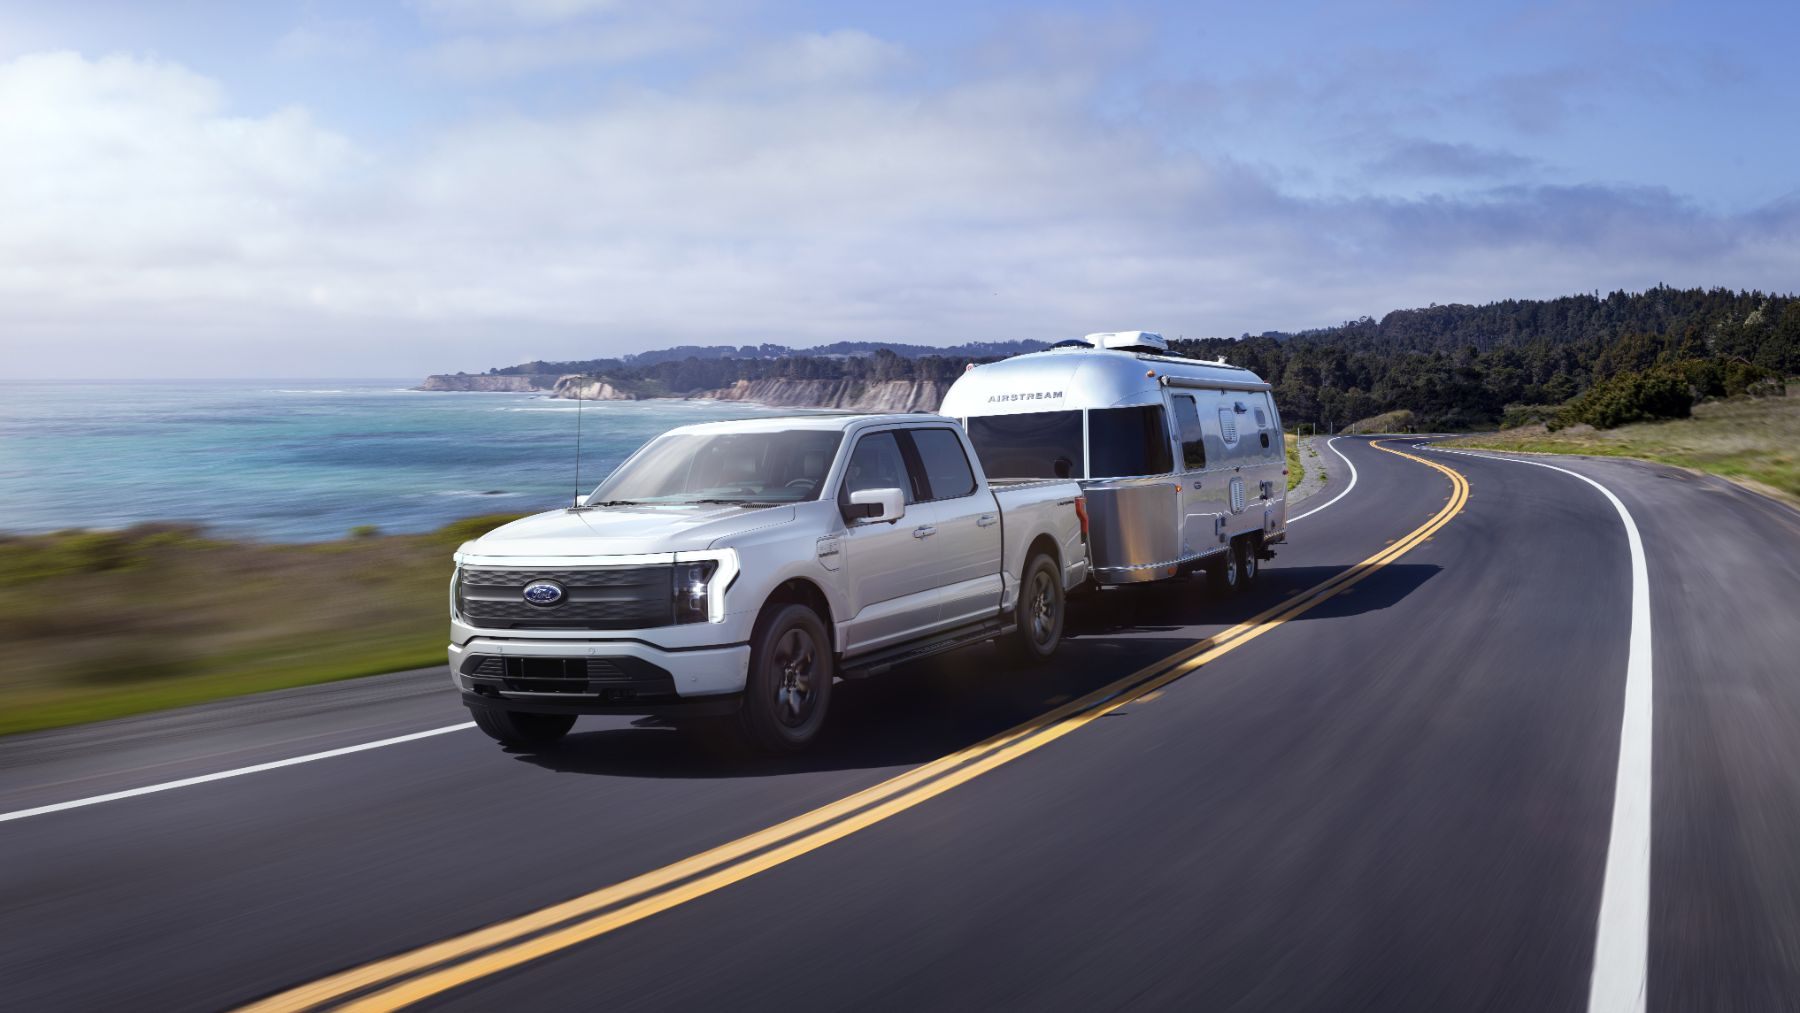 2022 Ford F-150 Lightning: America's Favorite Workhorse is Now Electric